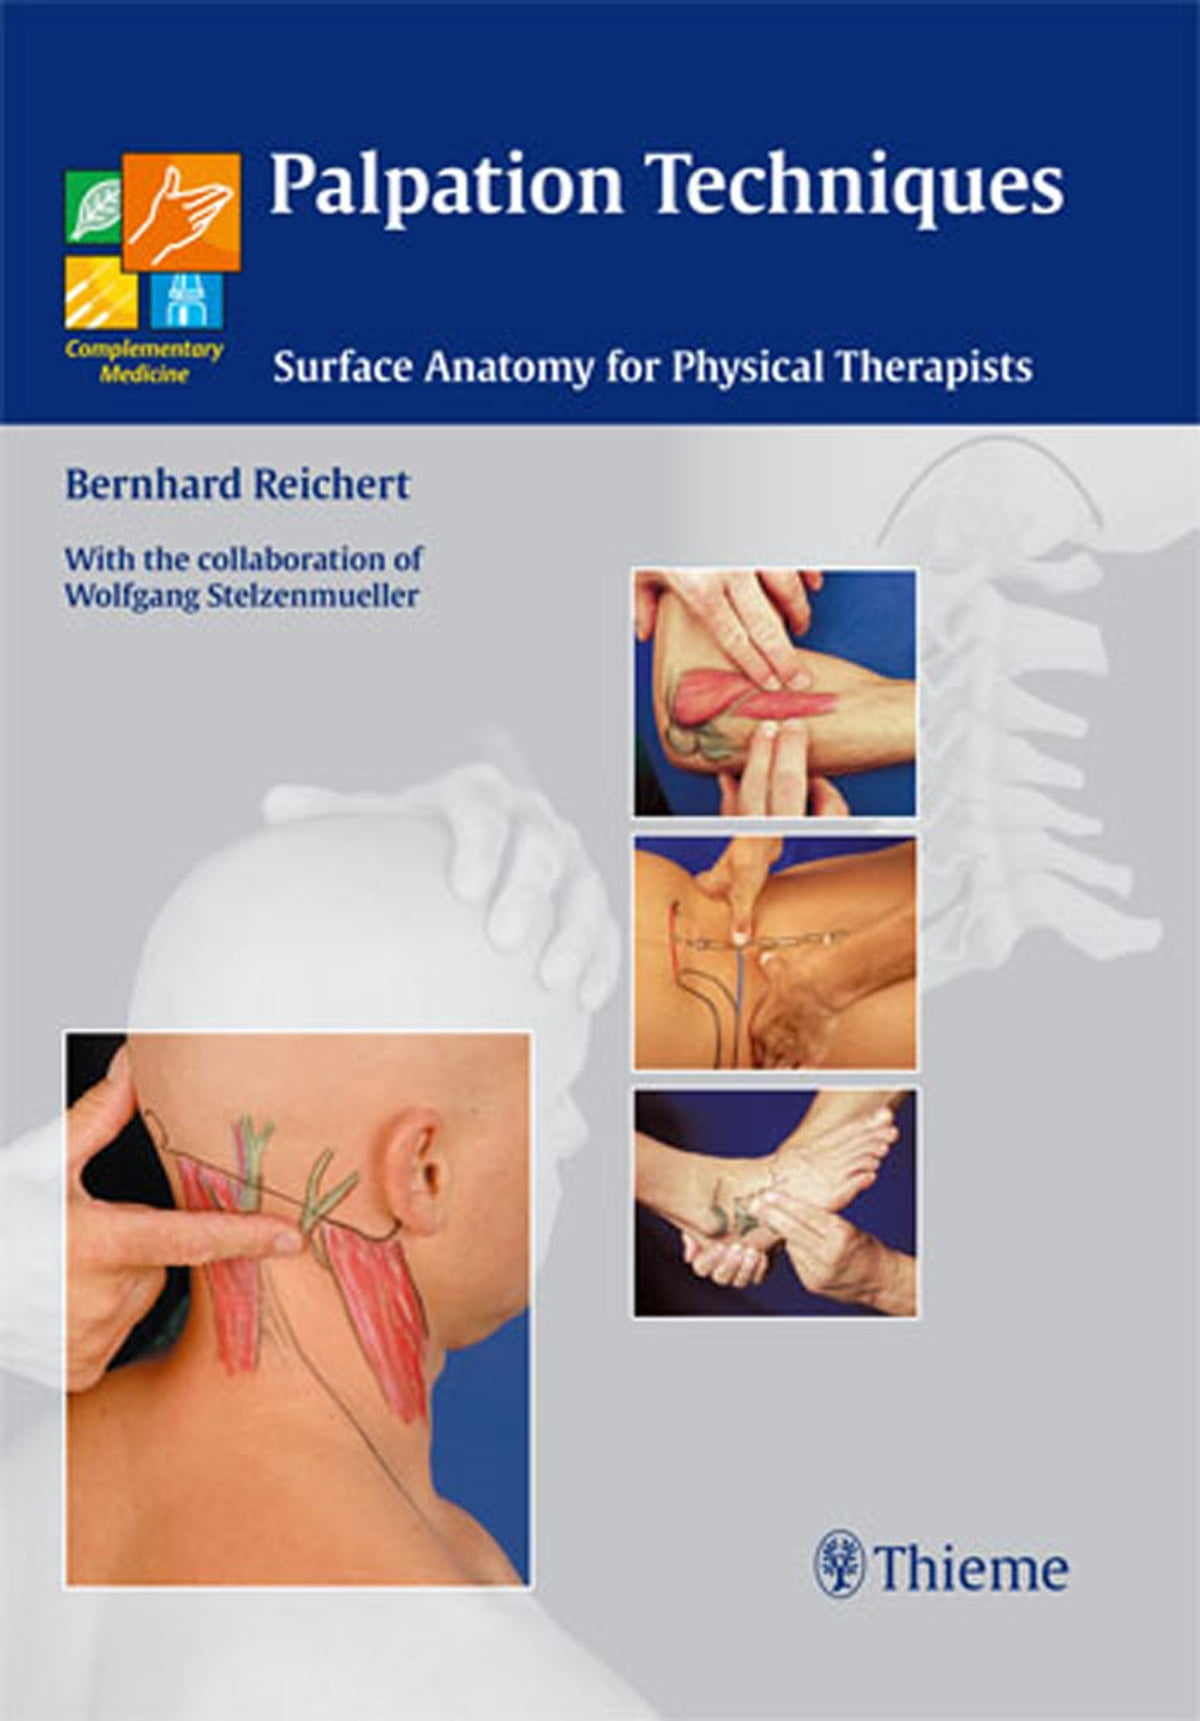 Palpation Techniques eBook by Bernhard Reichert - 9783131468512 ...